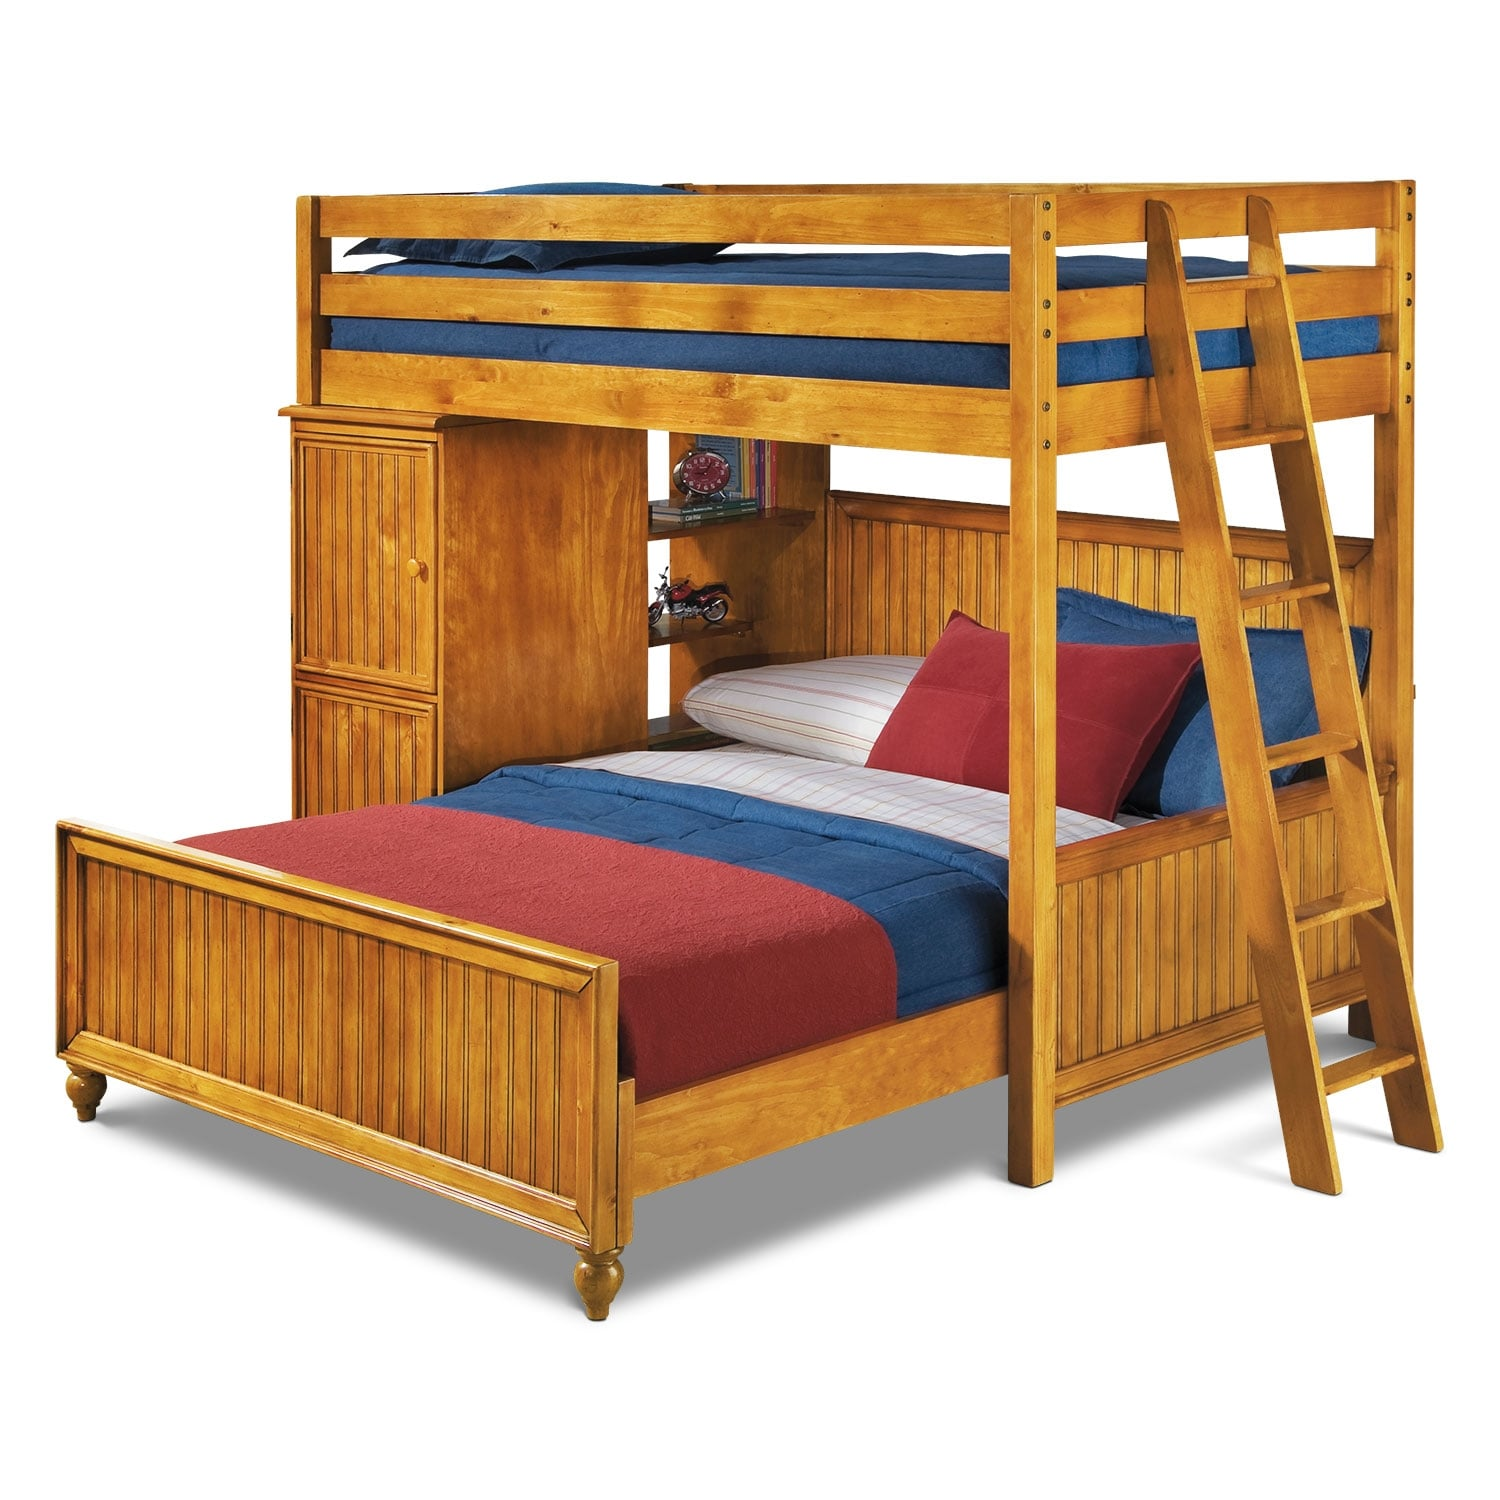 Colorworks Pine II Loft Bed with Full Bed